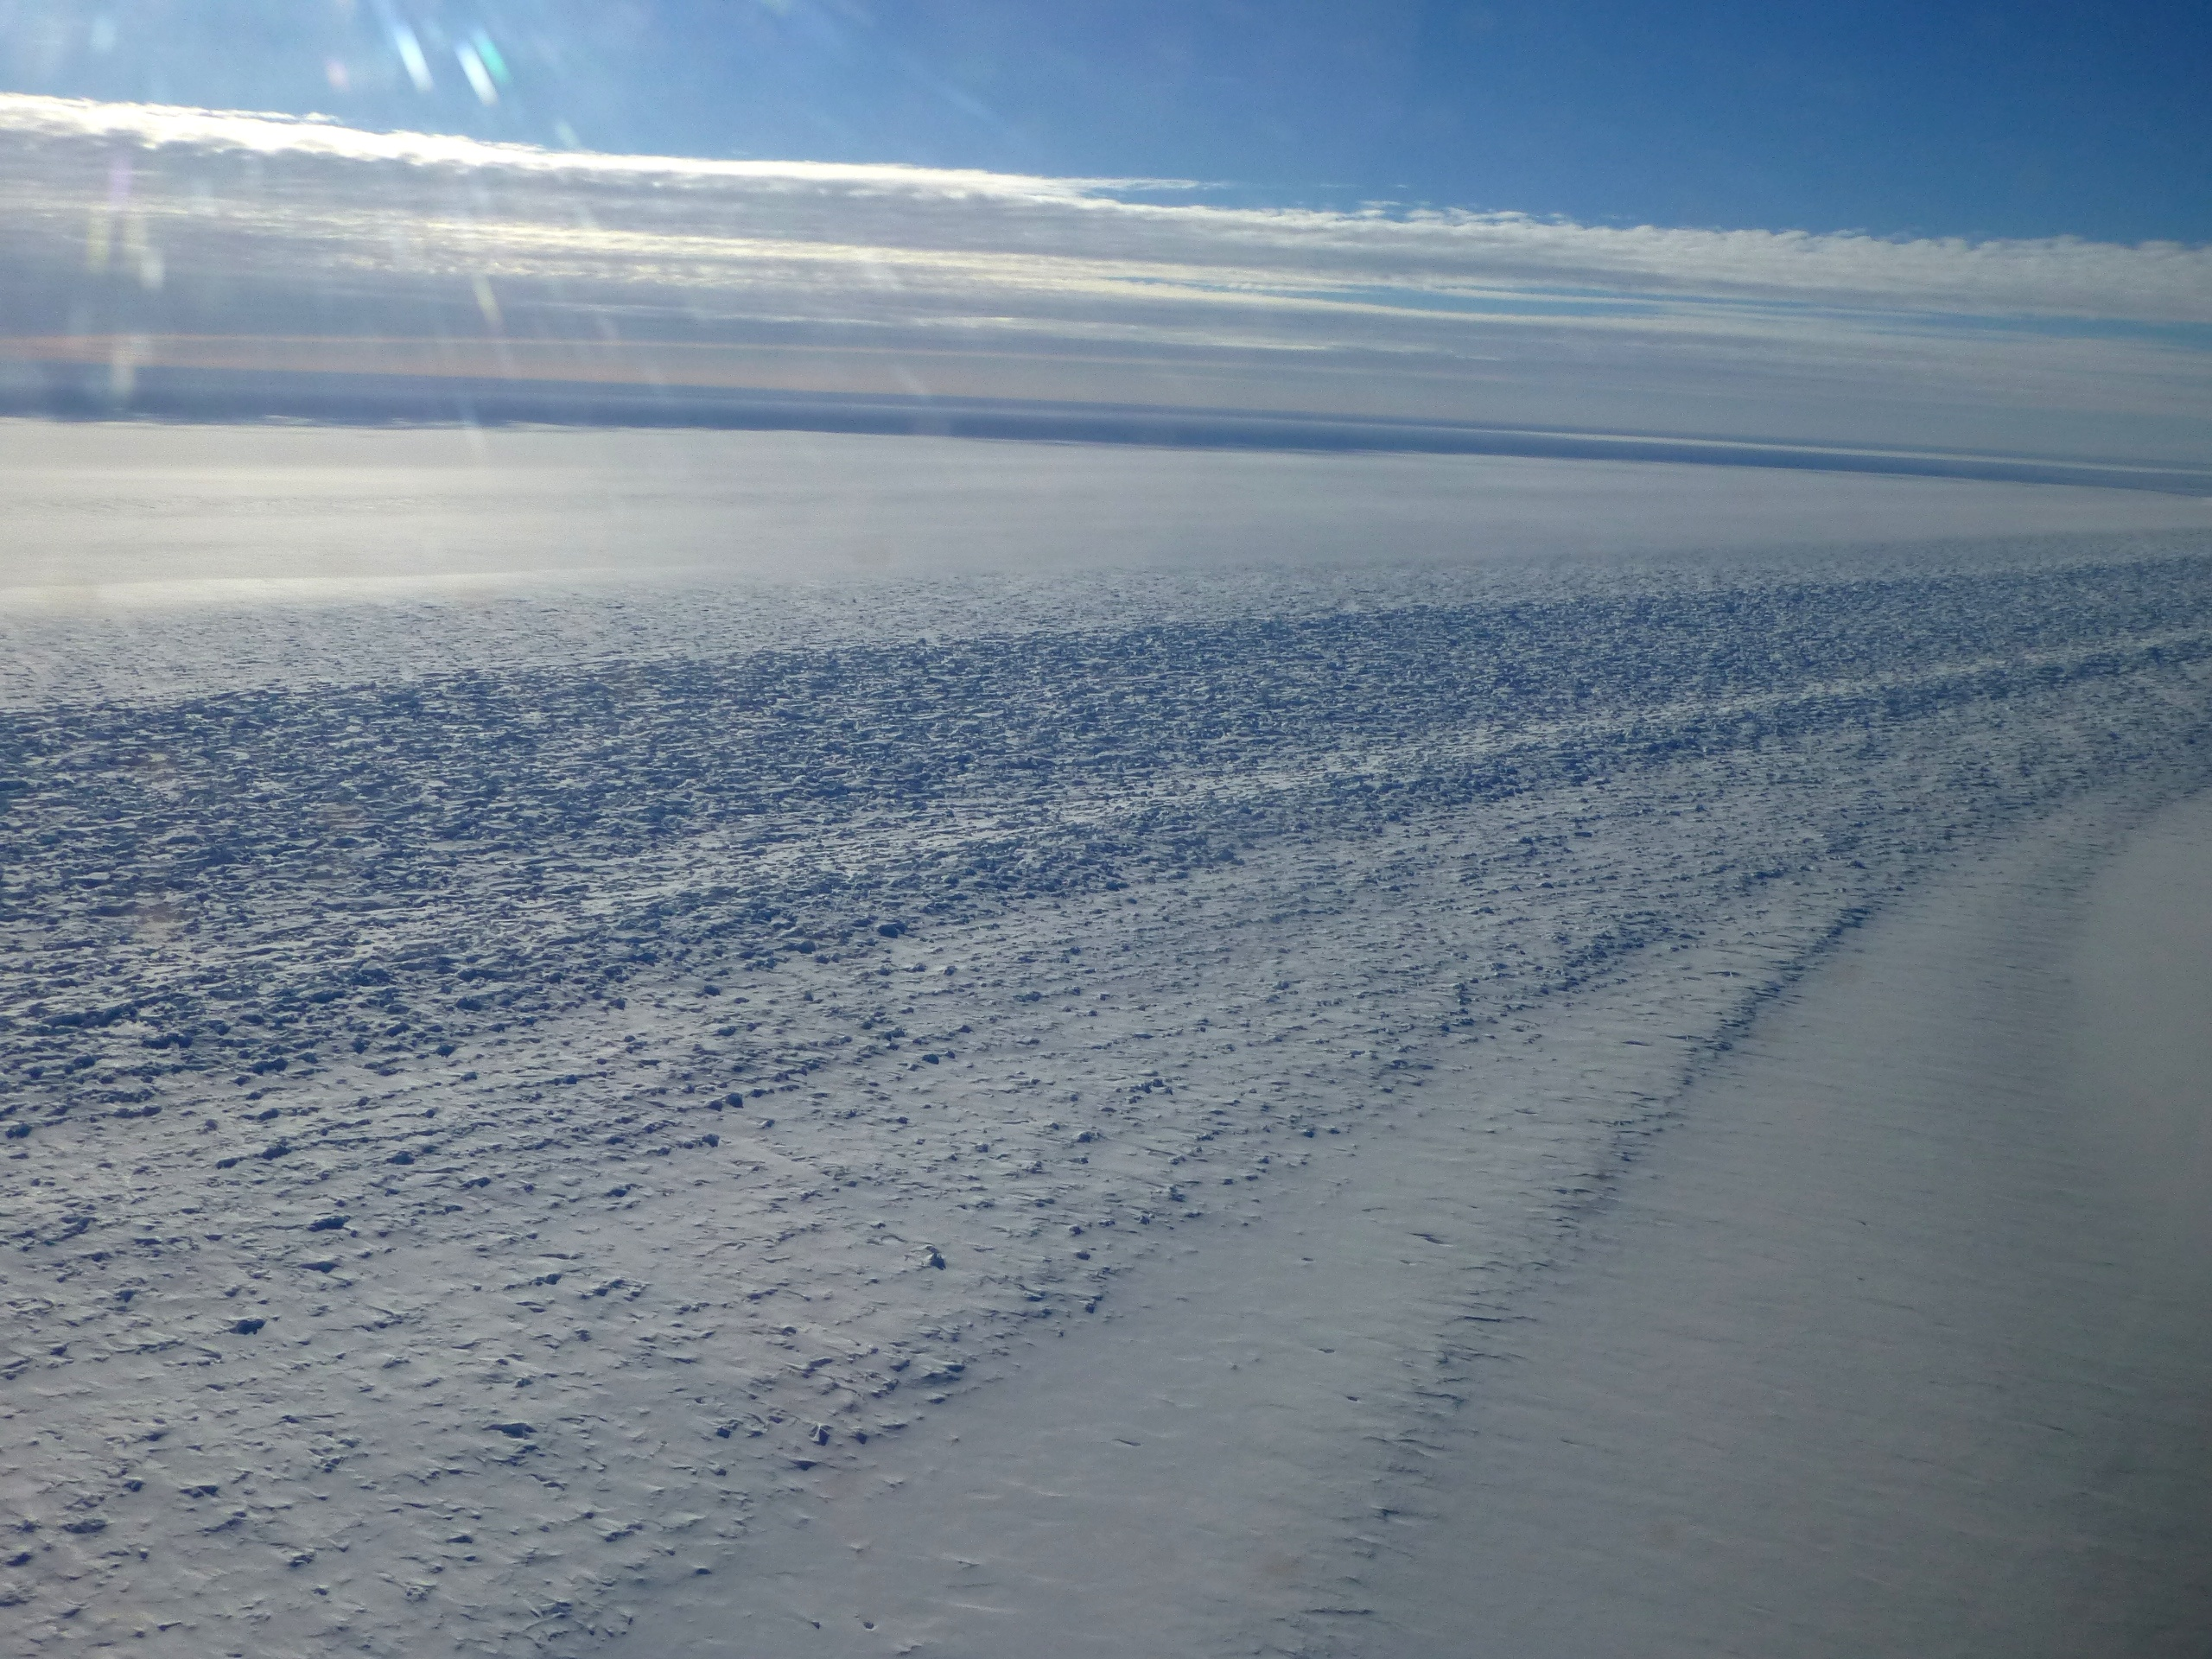 View of a glacier shear margin seen from the NASA DC-8 on the Nov. 1 survey of the Ronne Ice Shelf grounding line. A shear margin is the point where fast-flowing glacier ice meets slow-moving ice or rock (in this case, ice attached to the Dufek Massif in Antarctica's Pensacola Mountains). Credit: NASA / Maria-Jose Viñas